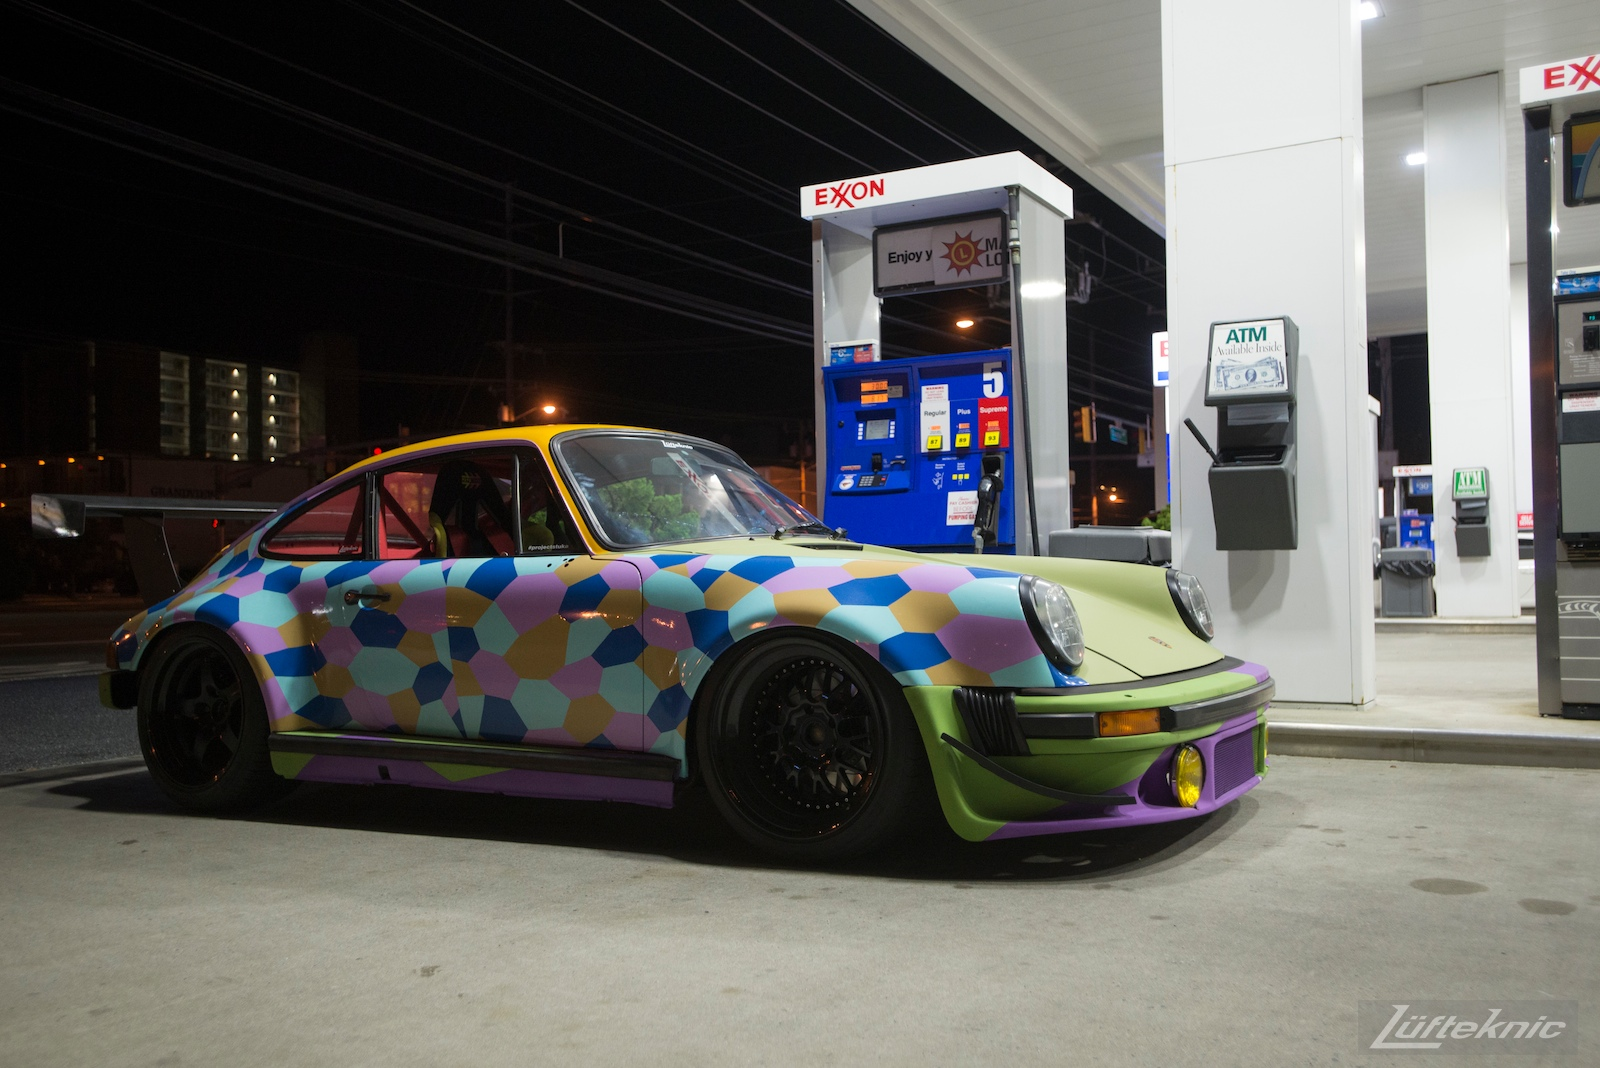 The Lüfteknic #projectstuka Porsche 930 Turbo with exxon gas pump.